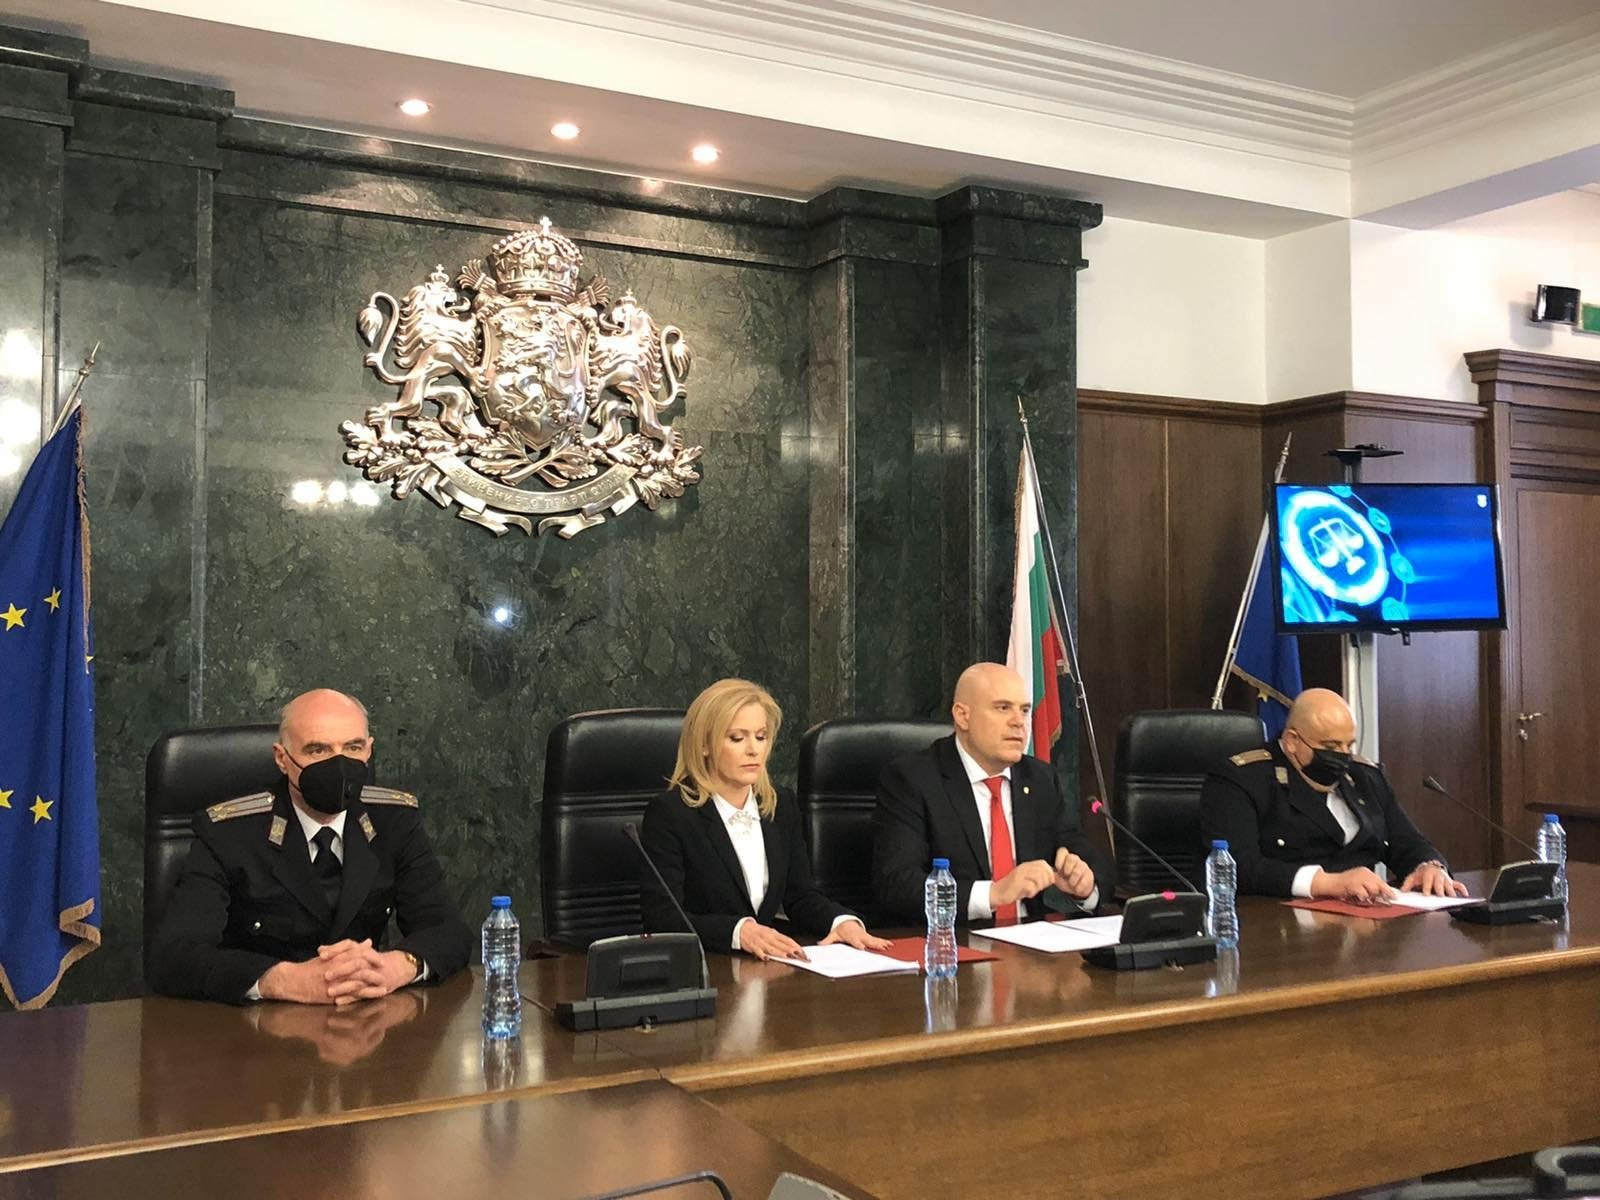 Bulgaria's Prosecutor GeneralIvan Geshev (CenterRight)attends a press conference along withspokeswoman, Siika Mileva (Center Left),as six people are arrested withsuspicion of being Russian spies, Sofia, Bulgaria, March 18, 2021. (AA Photo)